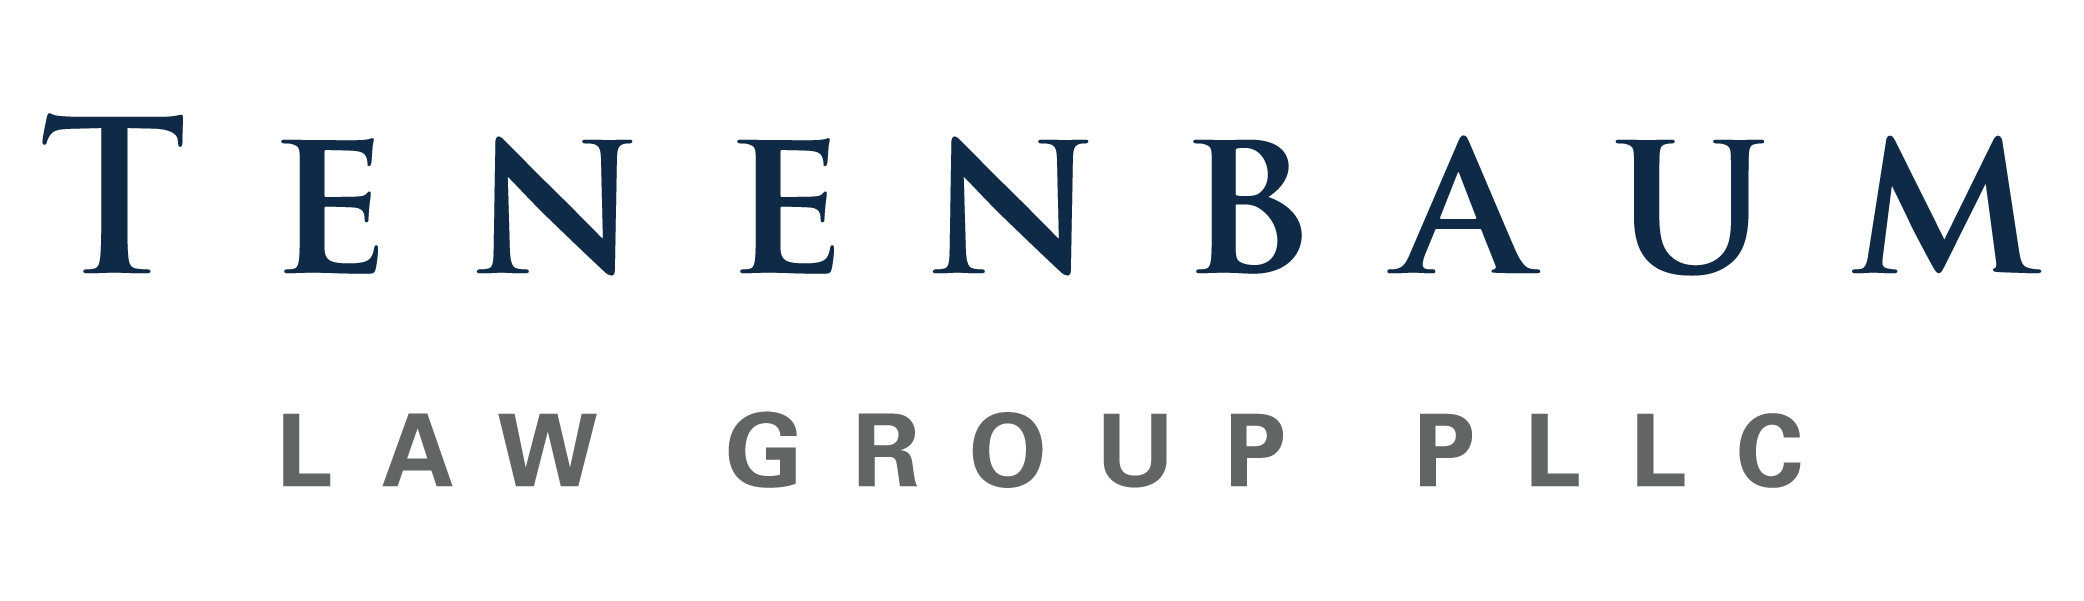 Tenenbaum Law Group PLLC